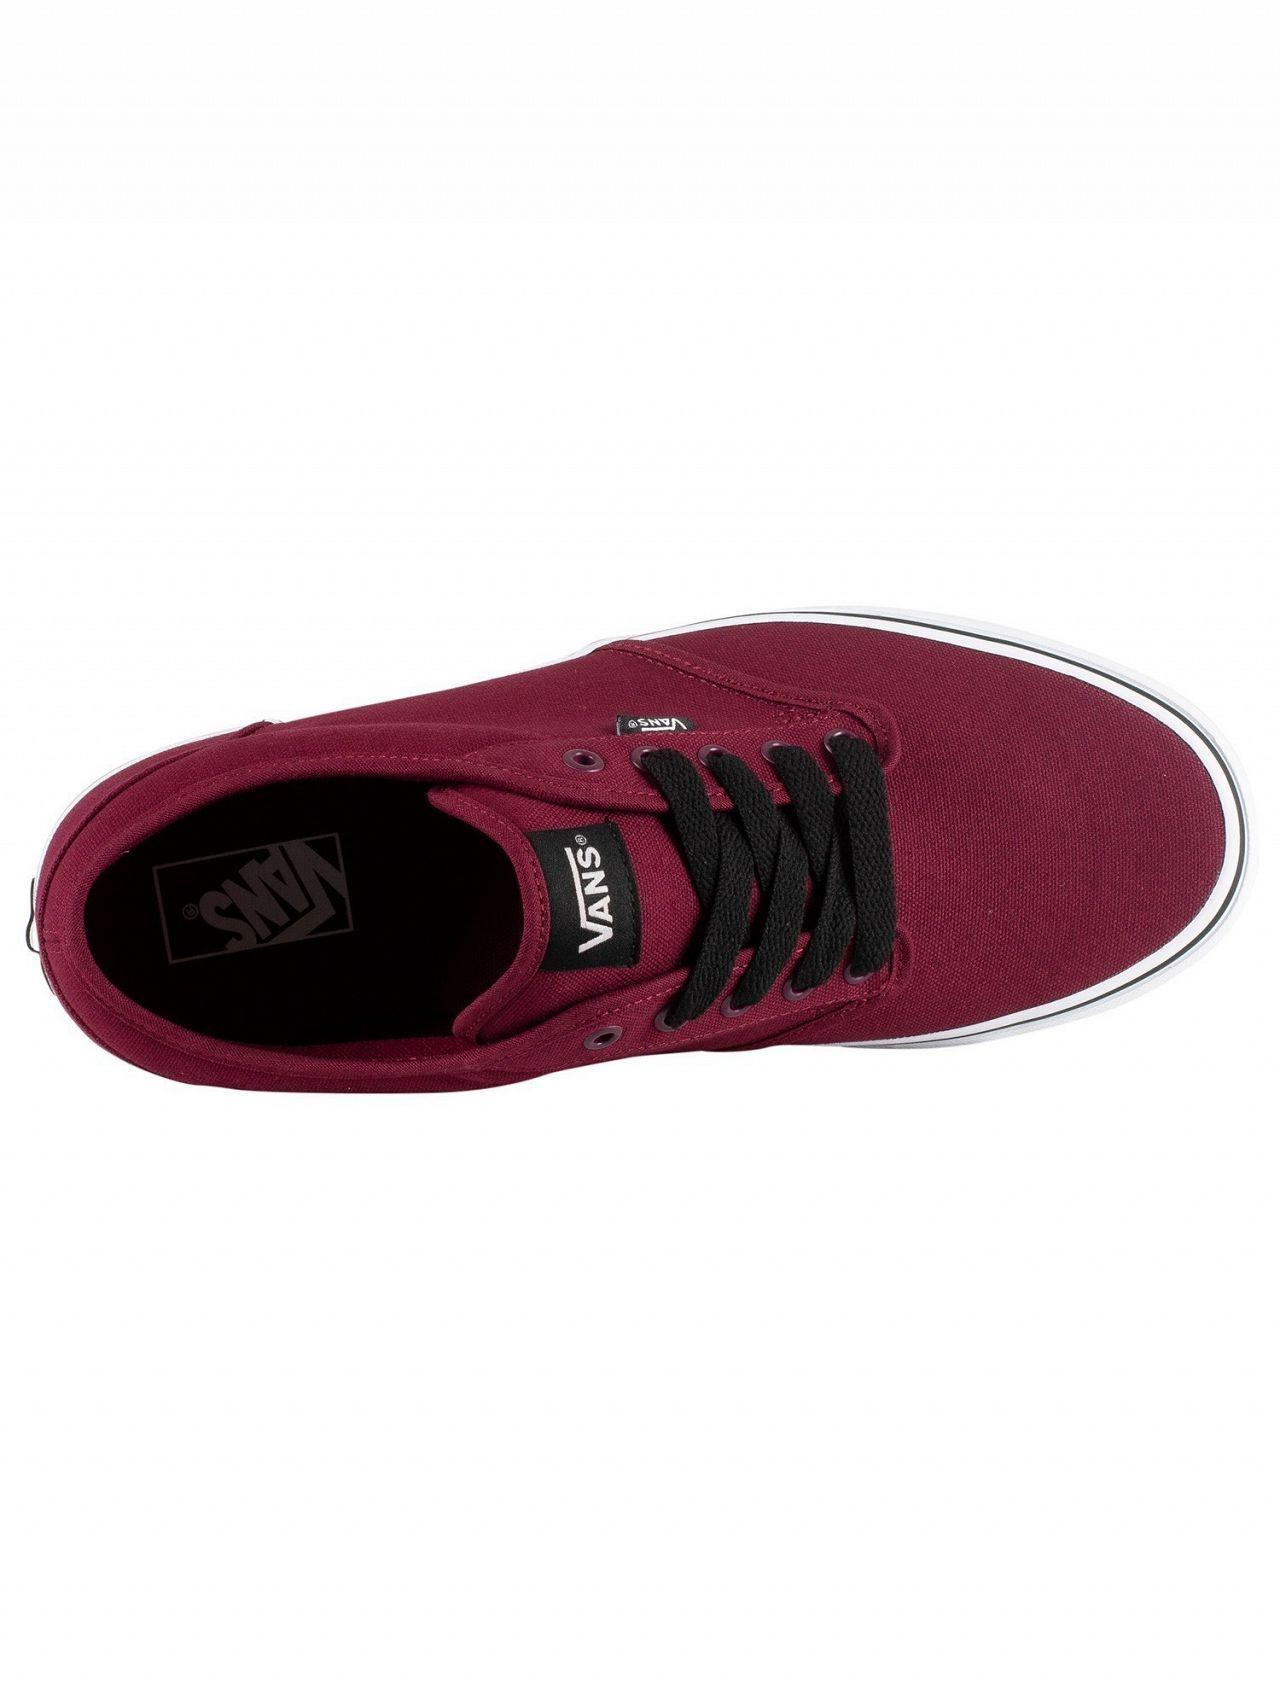 Vans Oxblood/white Atwood Canvas Trainers in Red for Men - Lyst